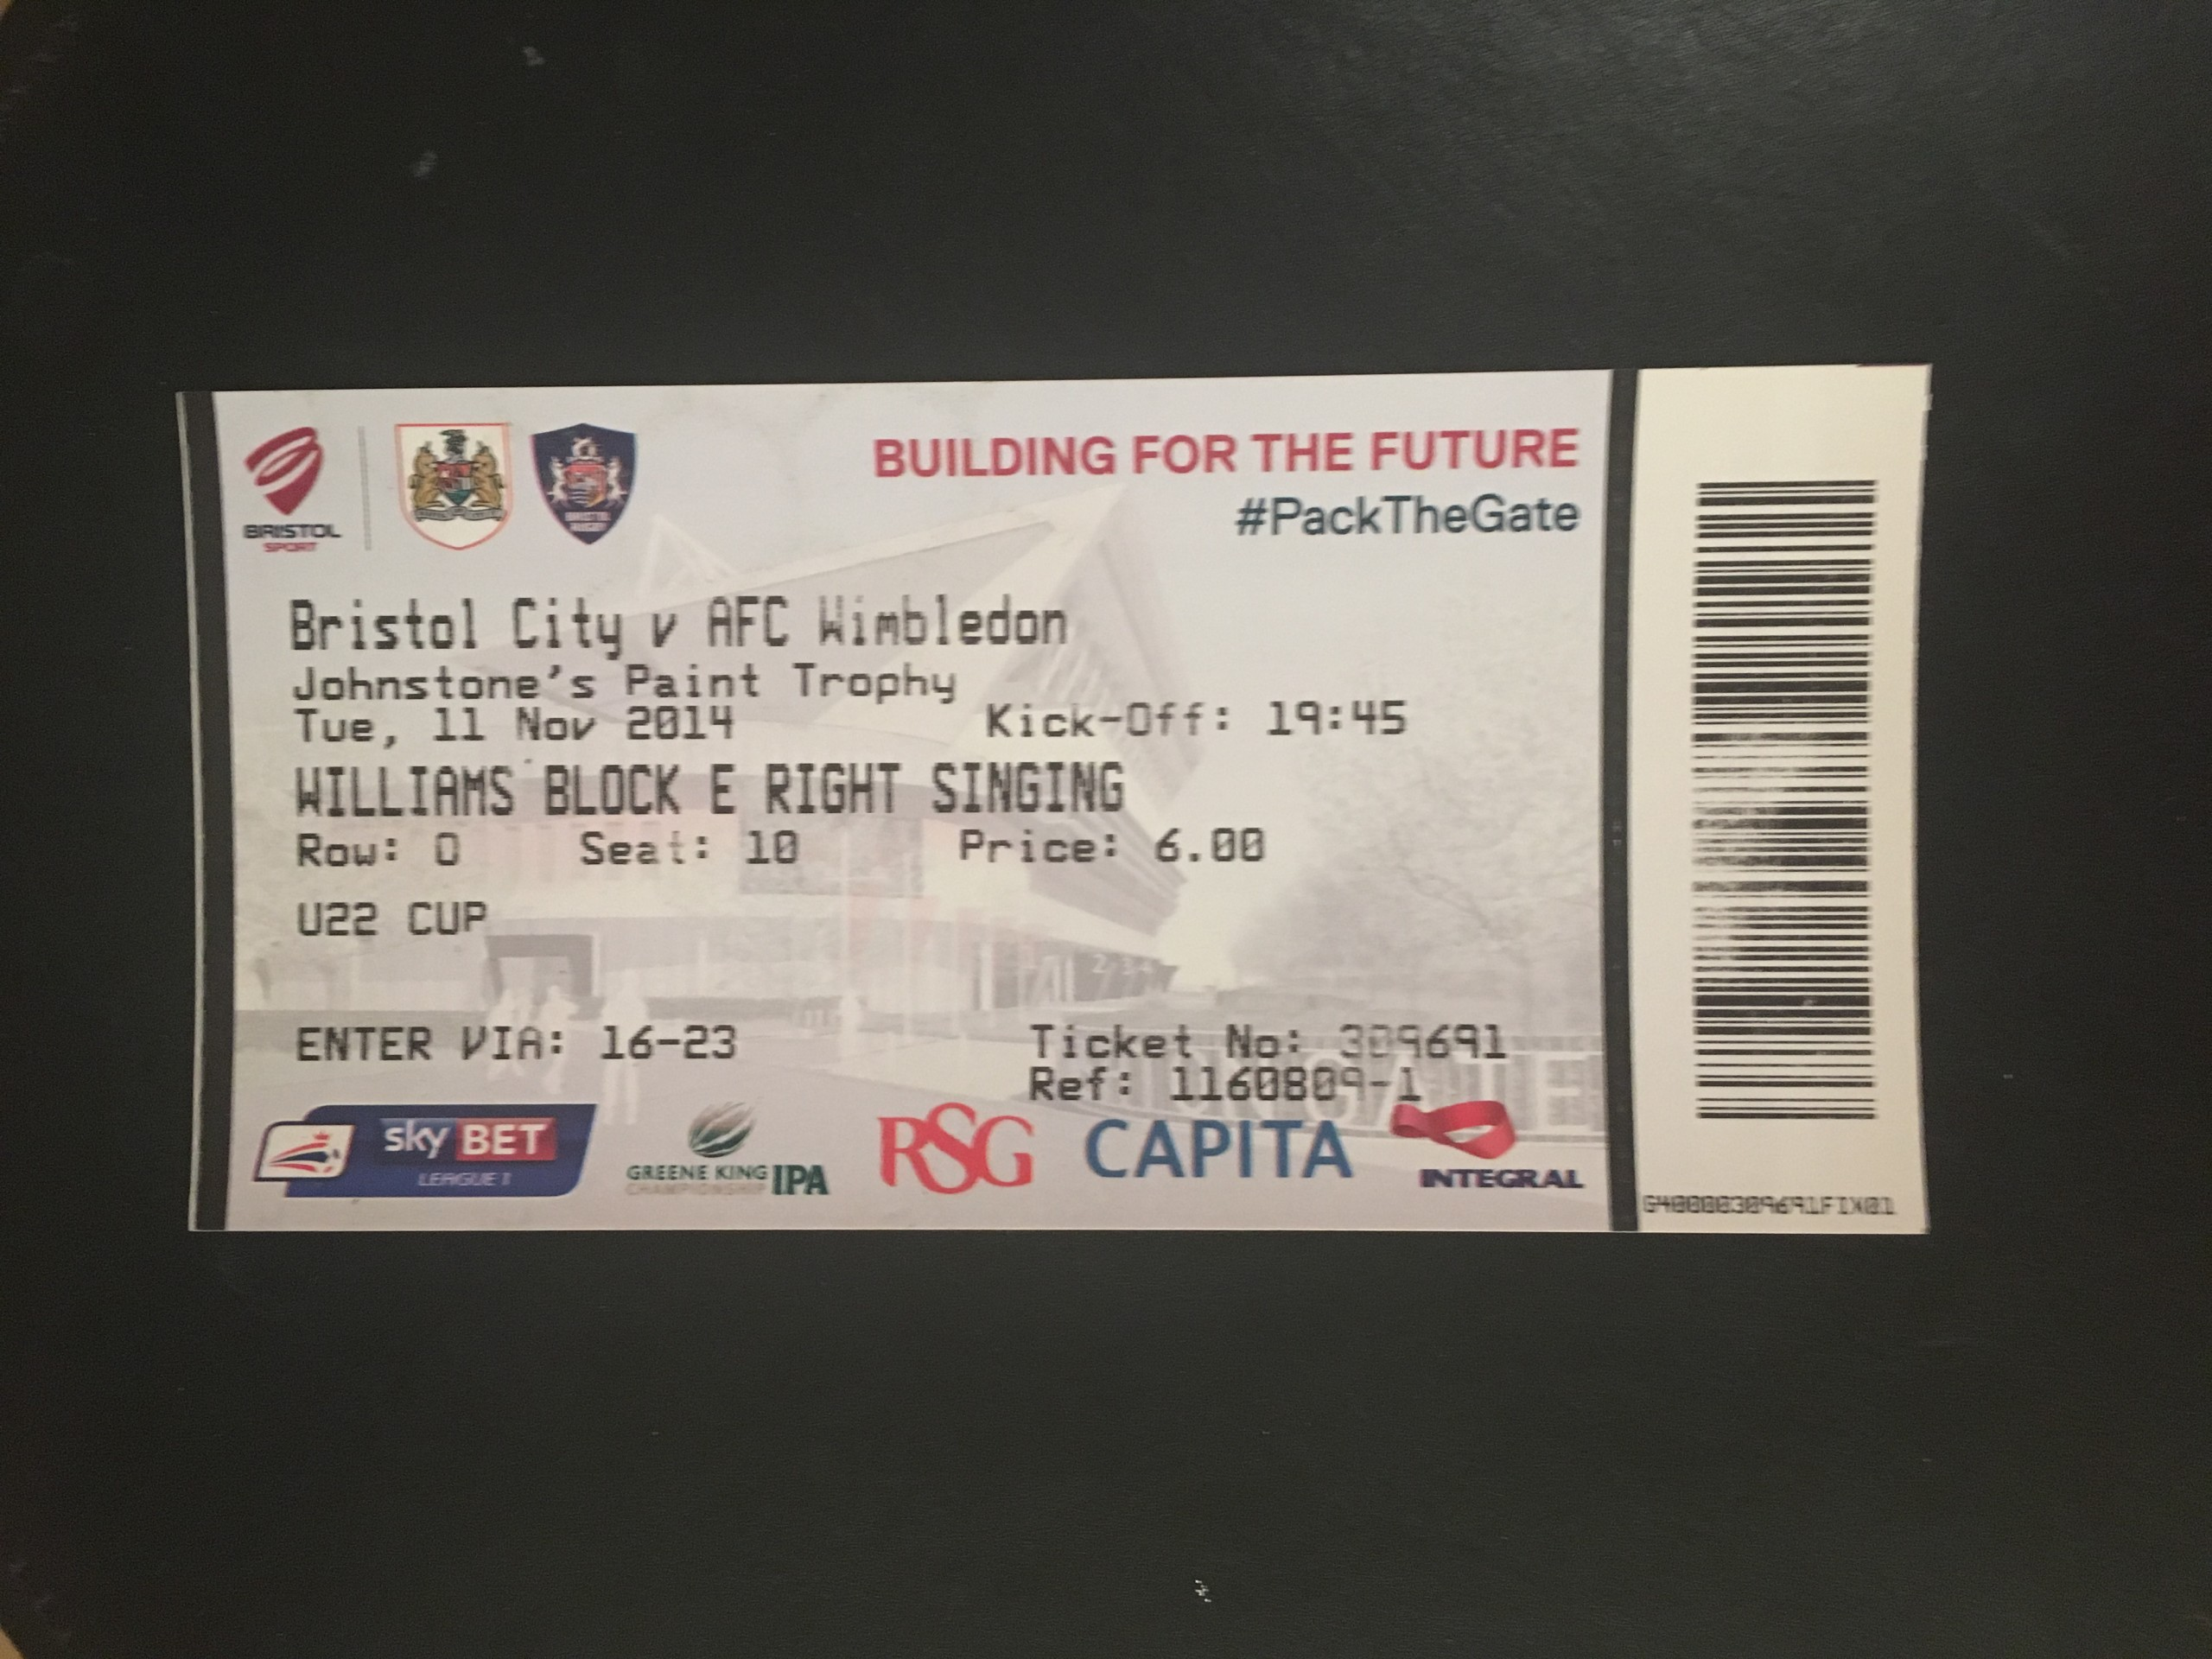 Bristol City v AFC Wimbledon 11-11-2014 Ticket